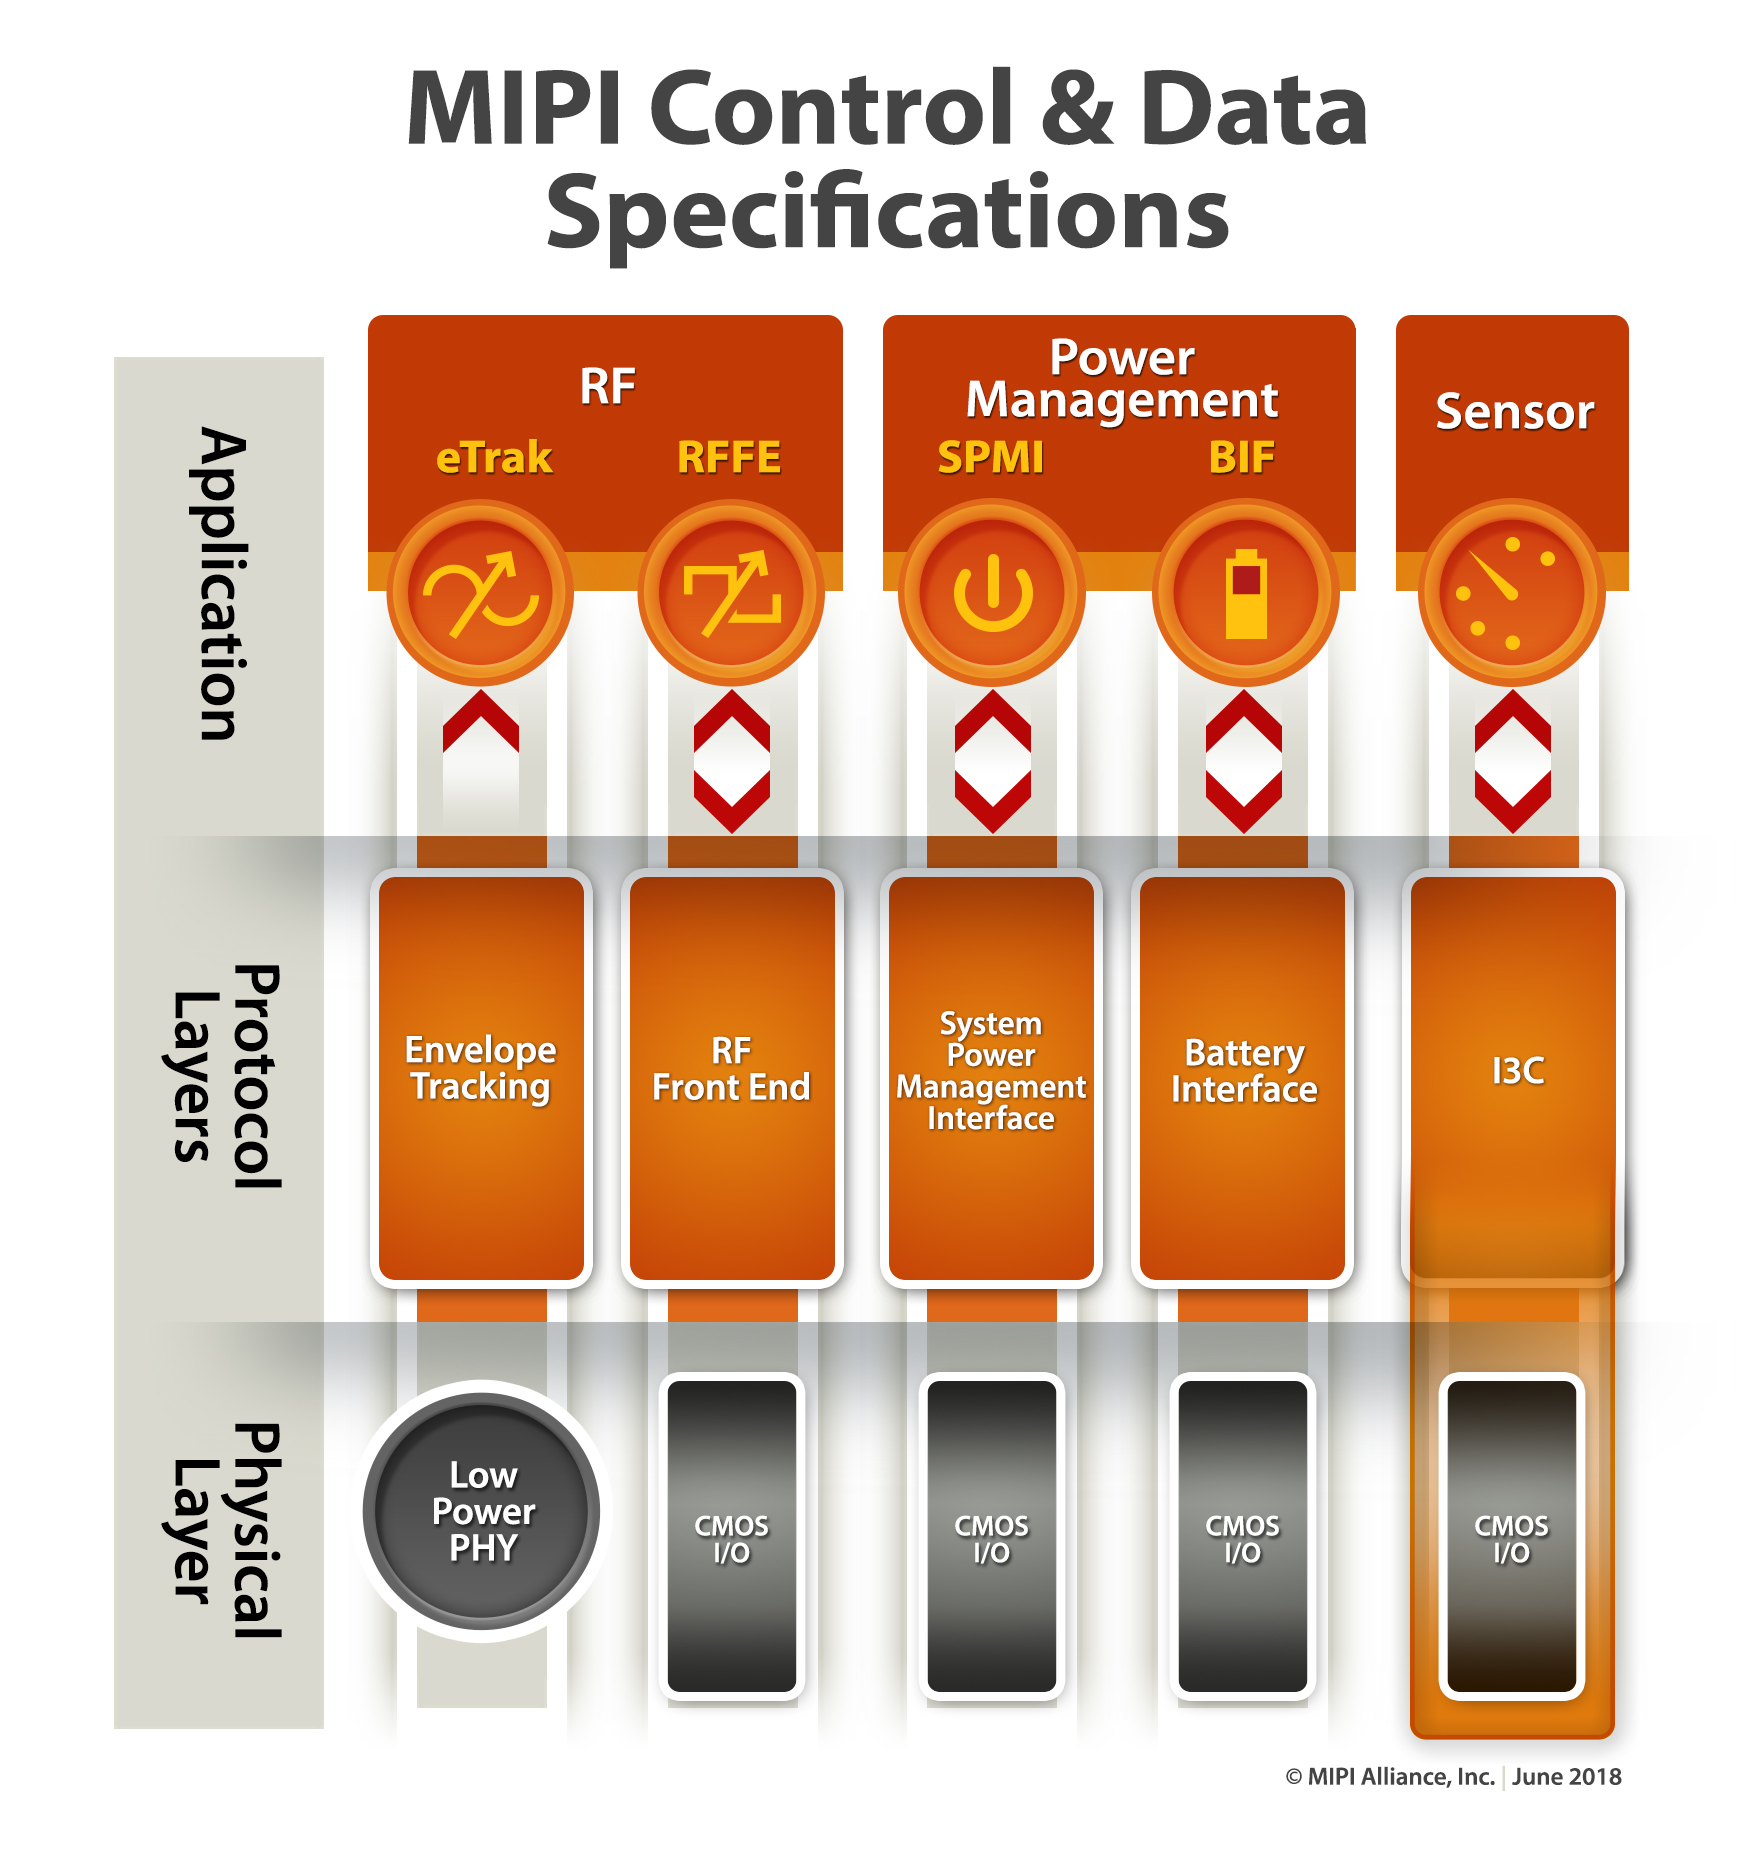 MIPI Control & Data Specifications Diagram